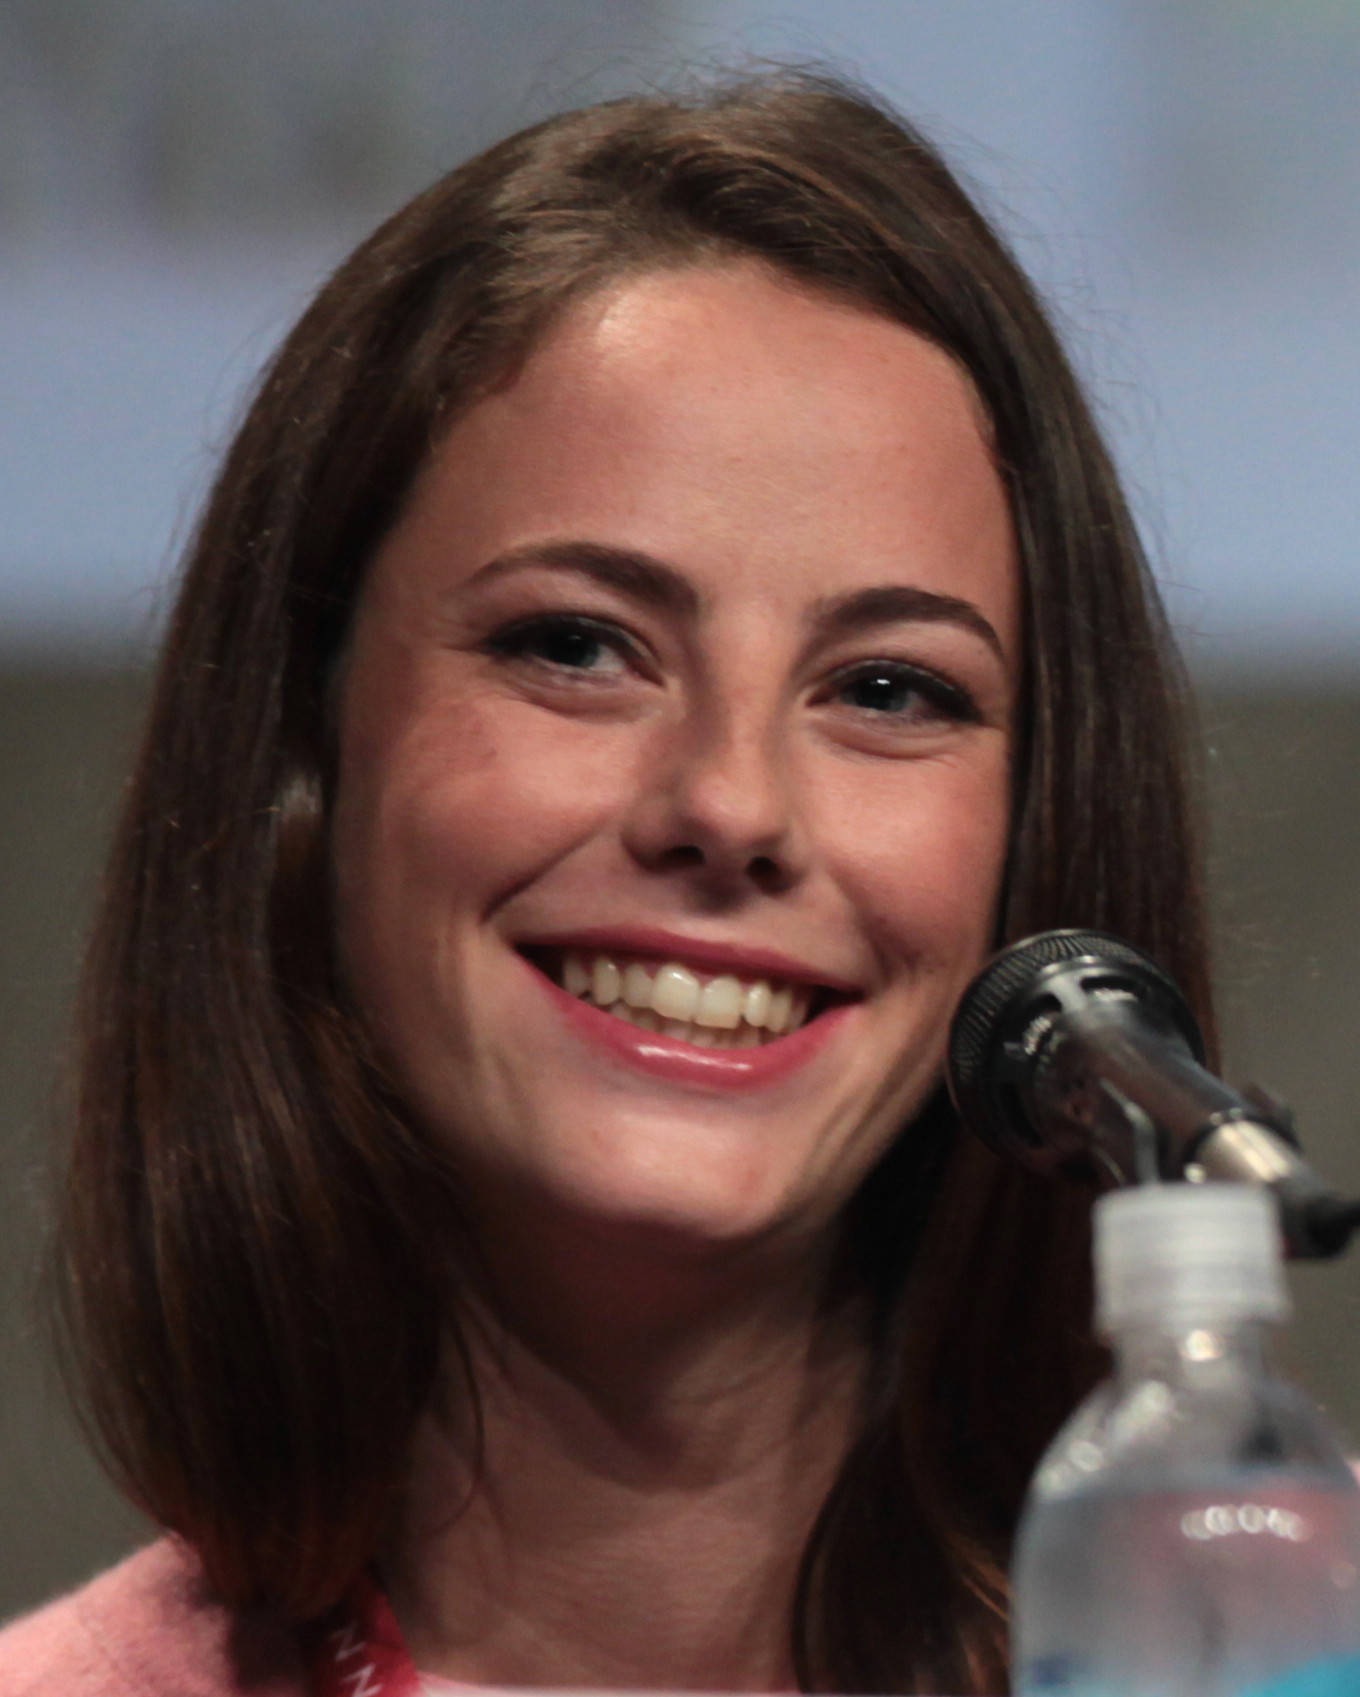 The 26-year old daughter of father Roger Humphrey and mother Katia Scodelario Kaya Scodelario in 2018 photo. Kaya Scodelario earned a 0.6 million dollar salary - leaving the net worth at 5 million in 2018